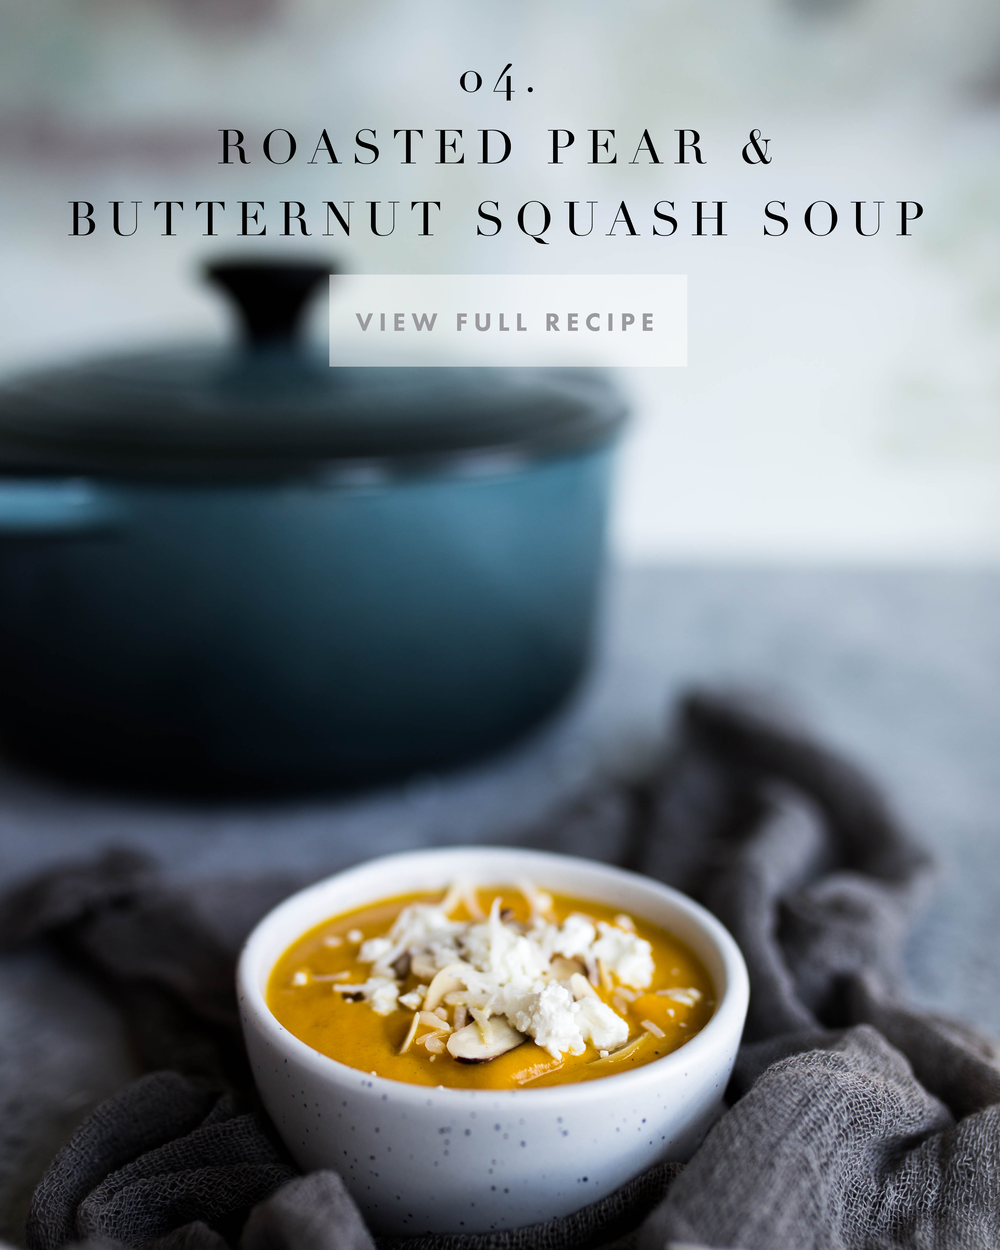 Roasted Pear & Butternut Squash Soup | Jennifer Diaz